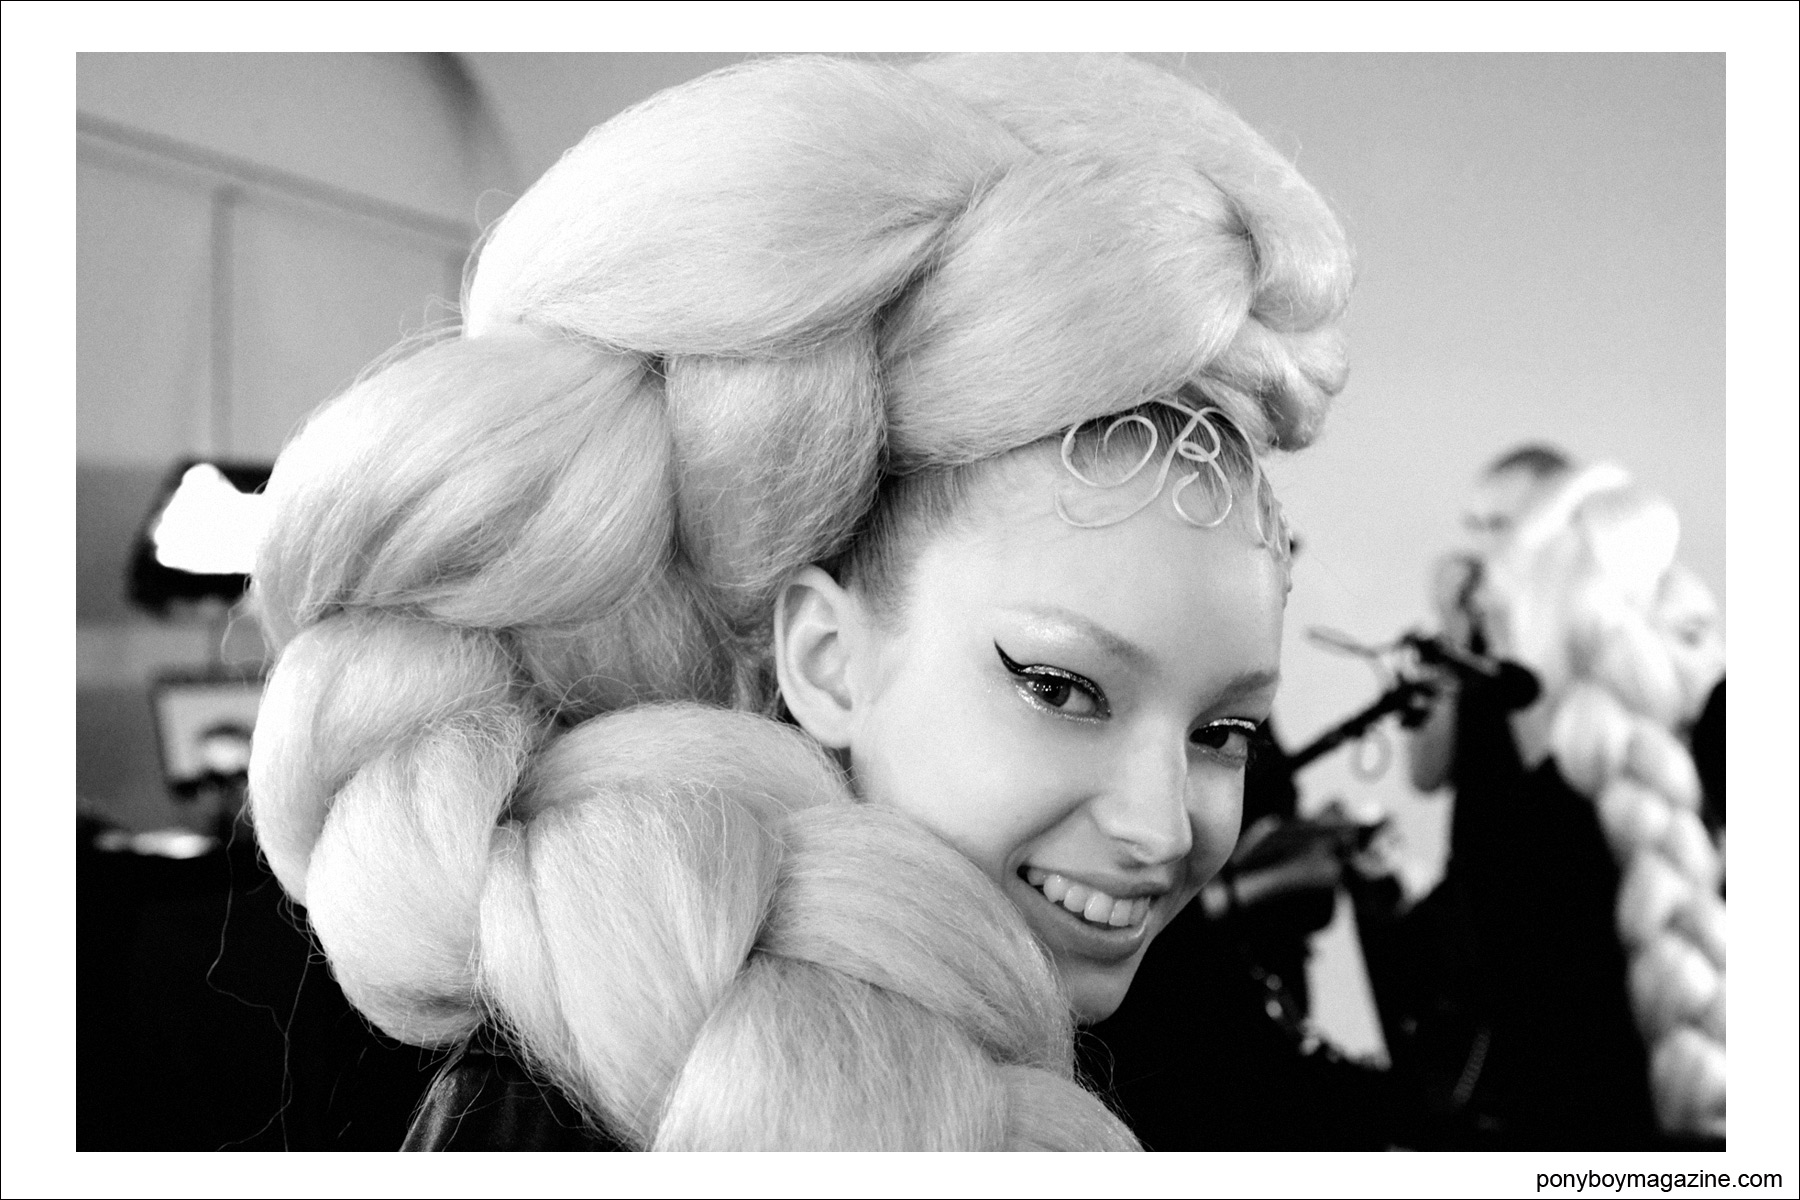 A model in an oversized braid, backstage at The Blonds S/S15 collection at Milk Studios NY. Photographed by Alexander Thompson for Ponyboy Magazine.